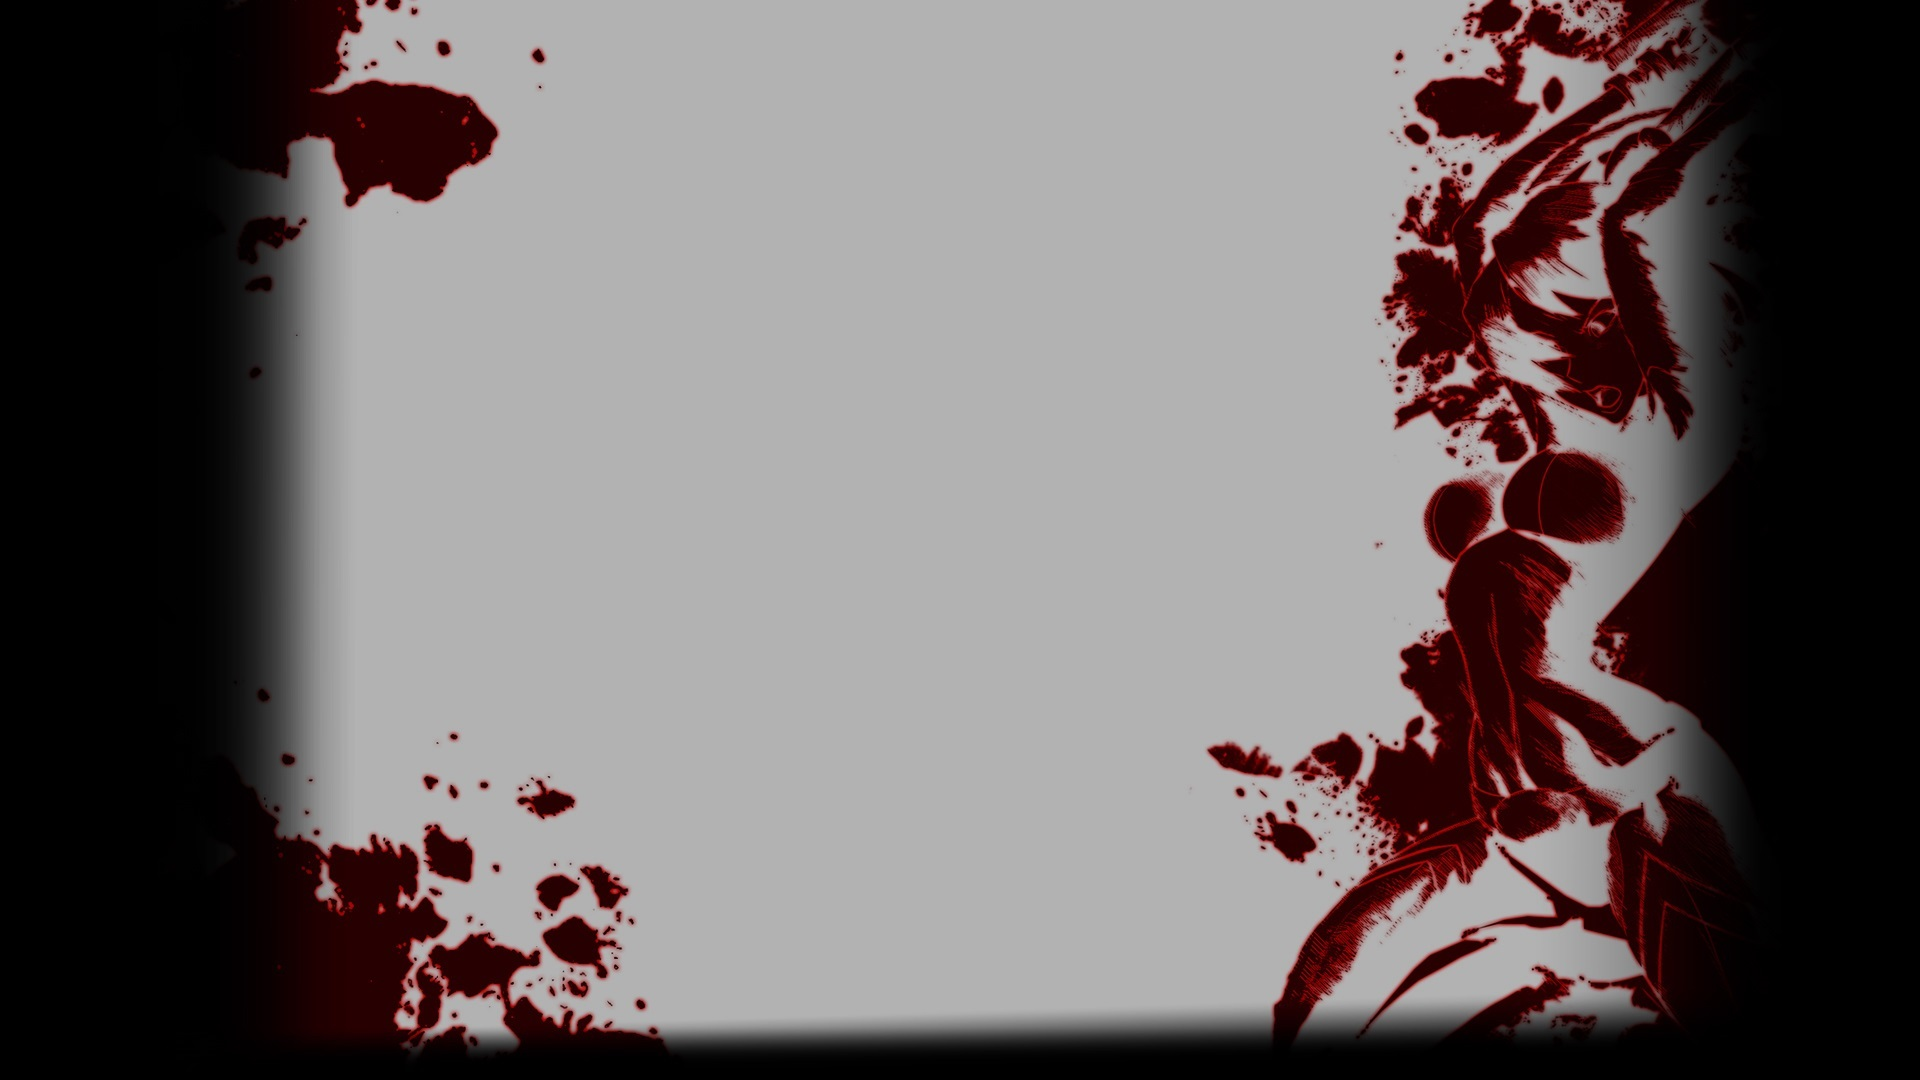 bloodrayne wallpaper 1920x1080-#29